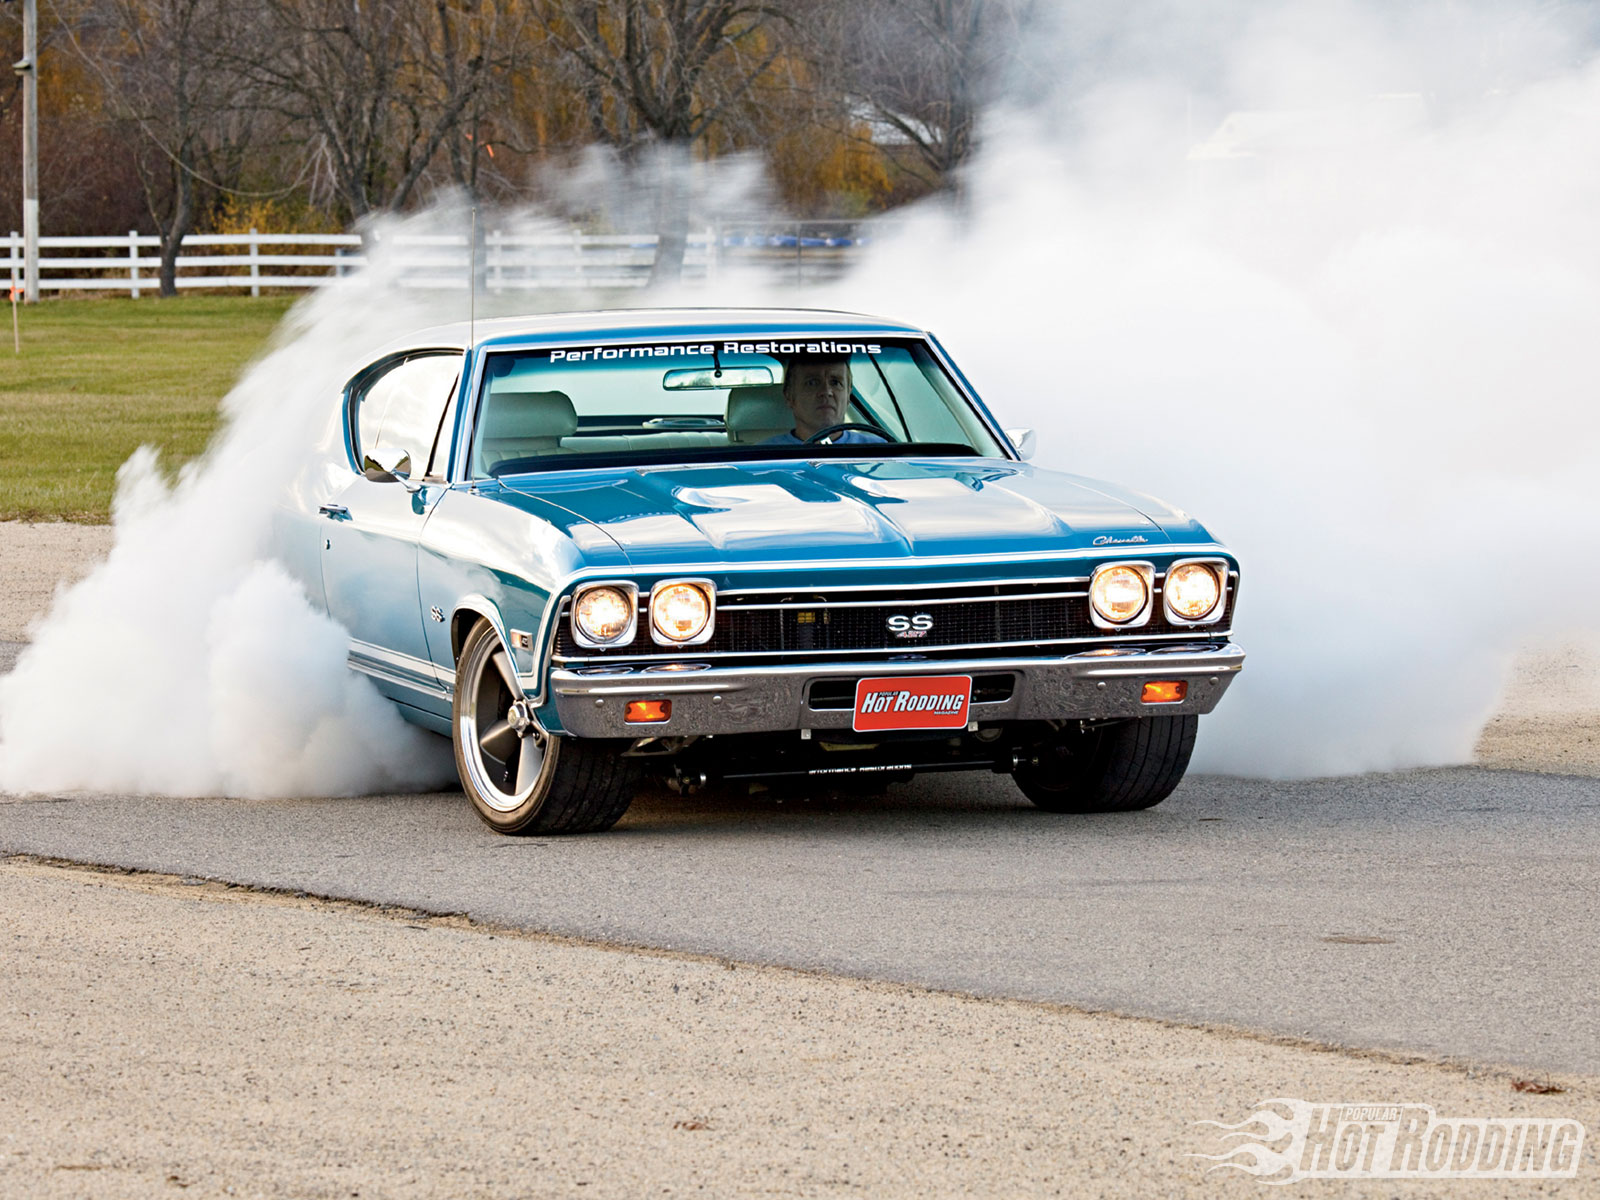 Chevrolet Ss 1968 Review Amazing Pictures And Images Look At The Car Chevy Nova Photo 1